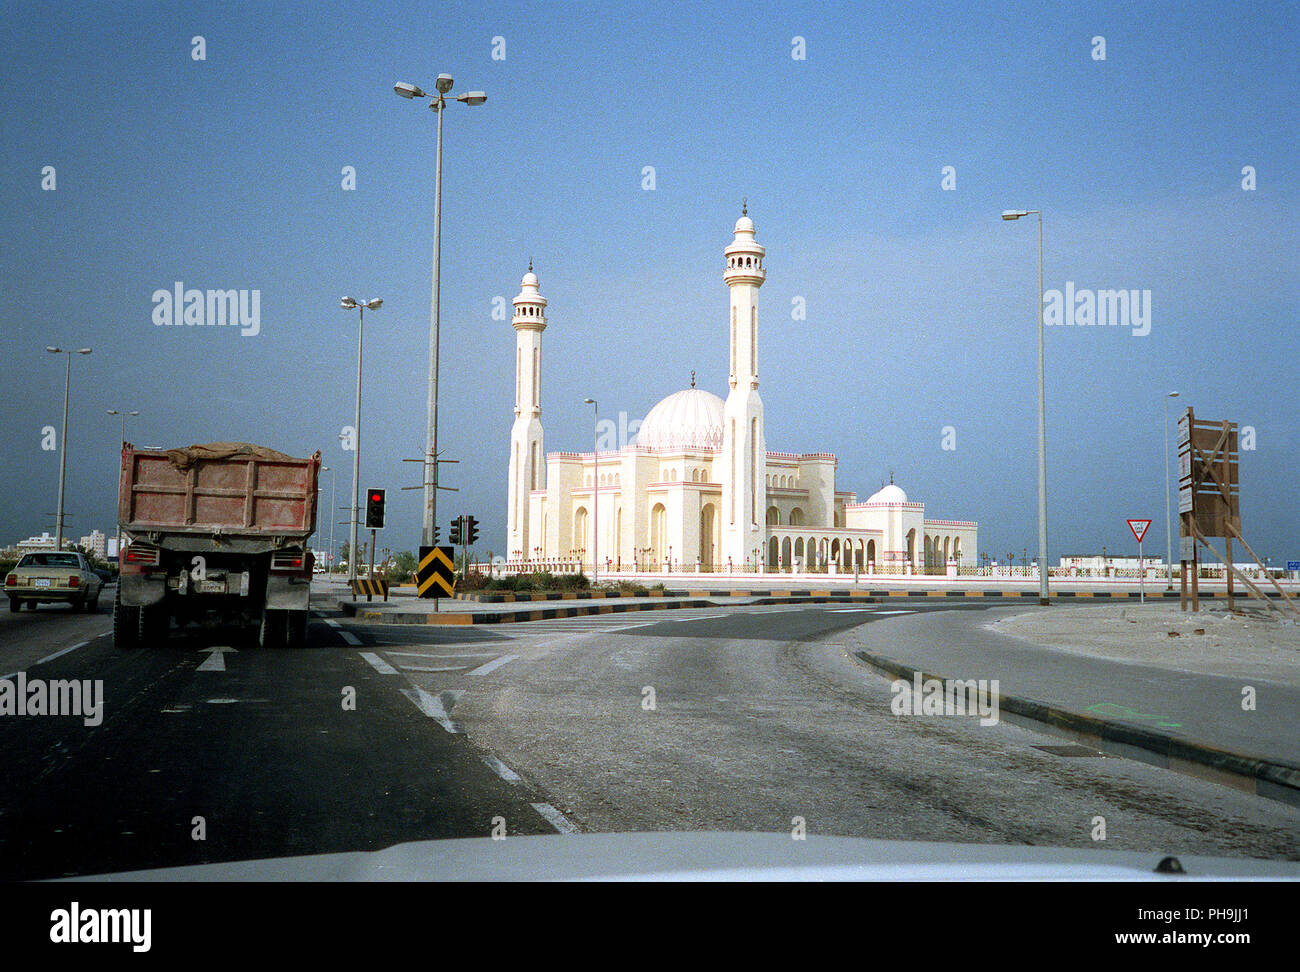 Civilian vehicles wait at a traffic light near a mosque during Operation Desert Storm. - Stock Image